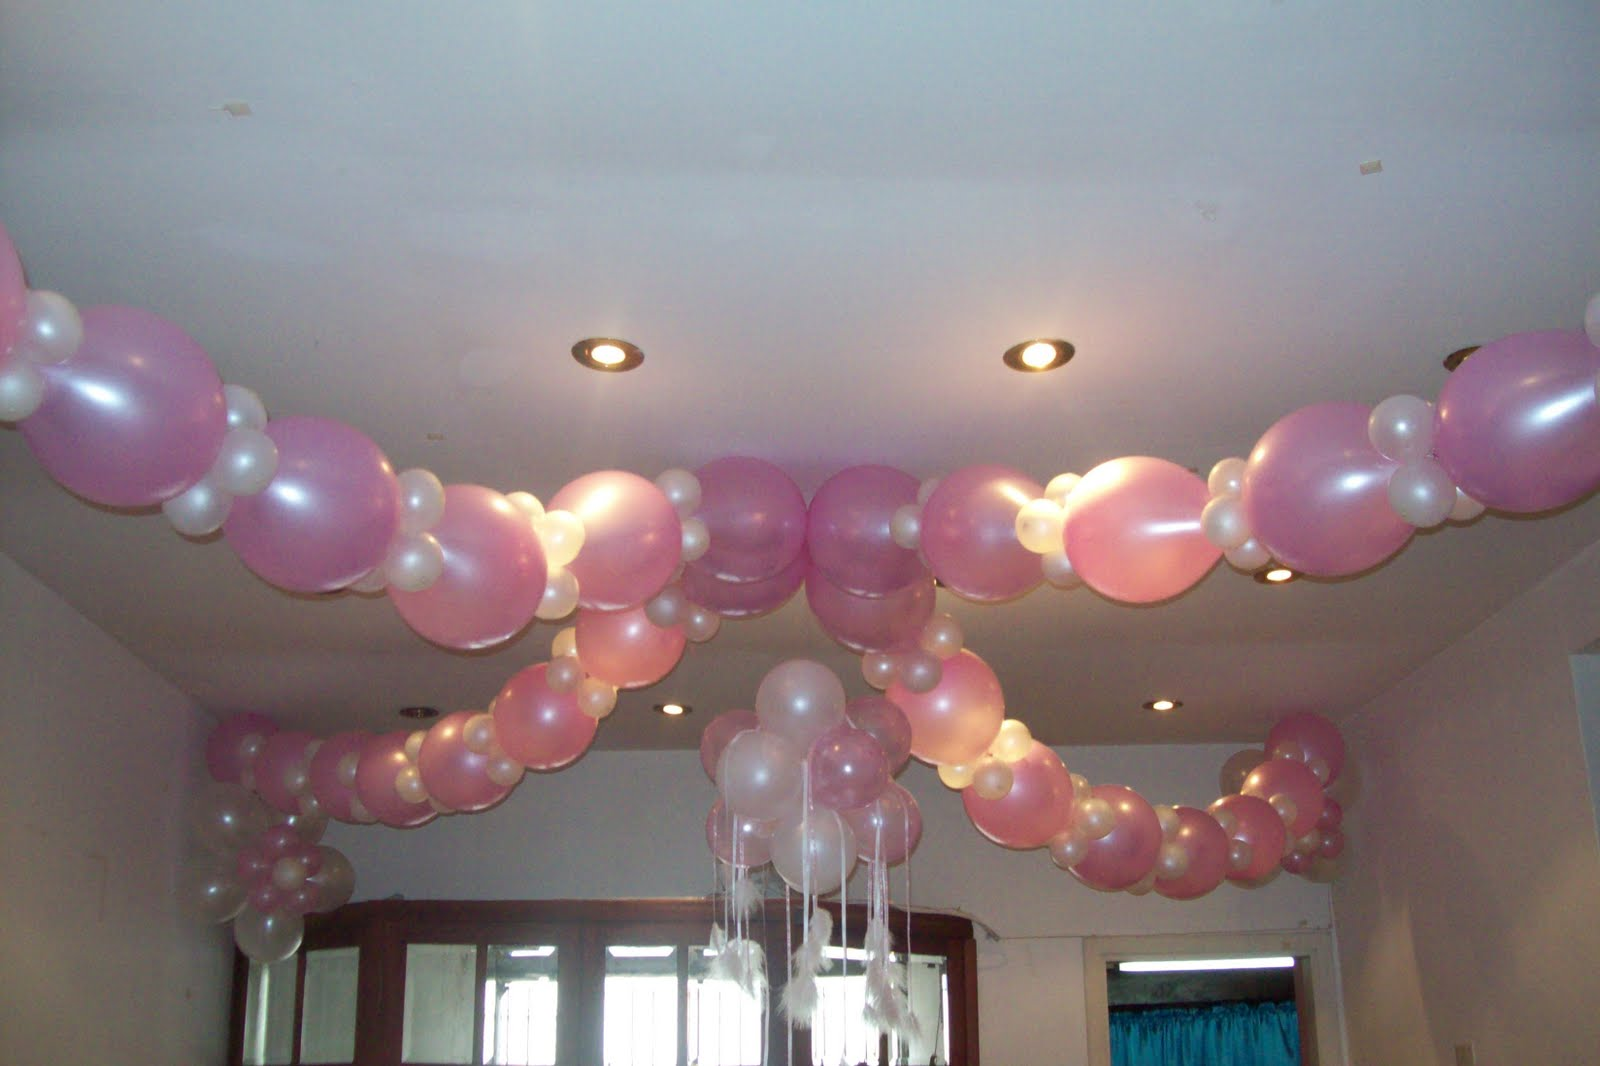 Decoracion con globos decoracion con globos para 15 a os for Decoraciones para fiestas de 15